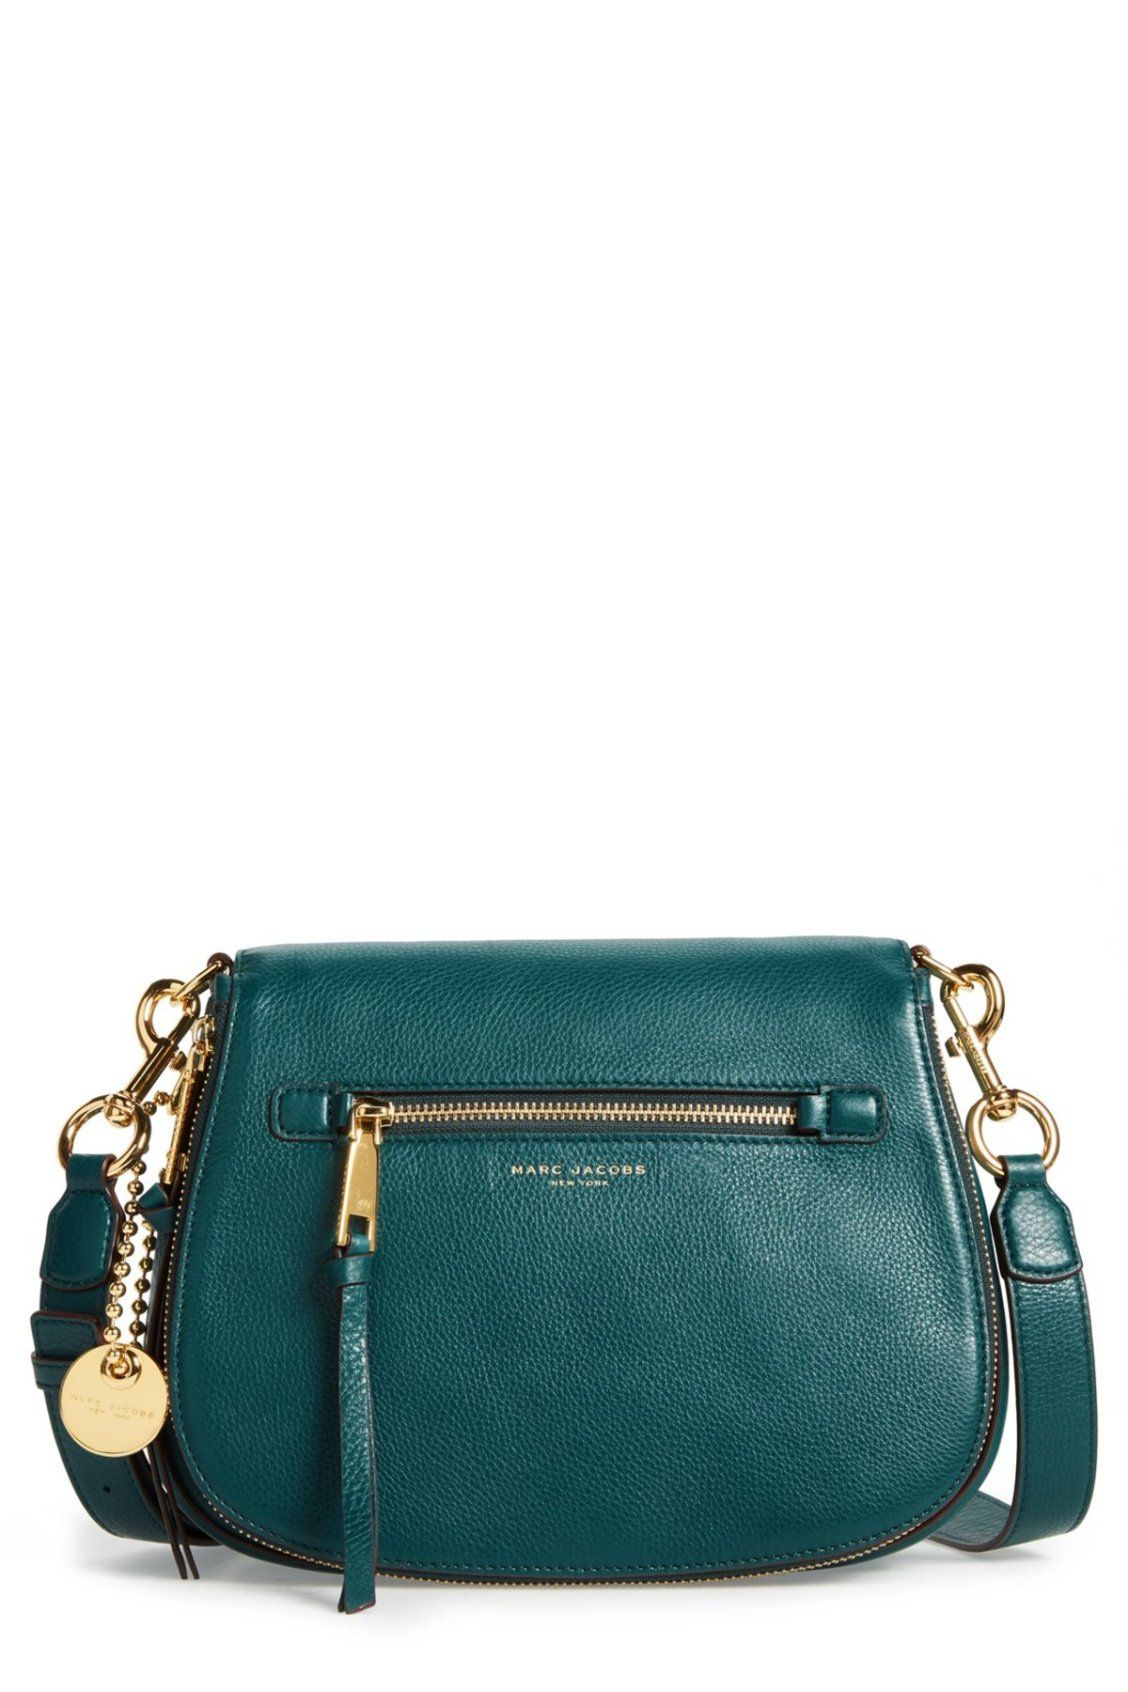 f76d691f0 Love the color of this Marc Jacobs Recruit Nomad Pebbled Leather Crossbody  Bag